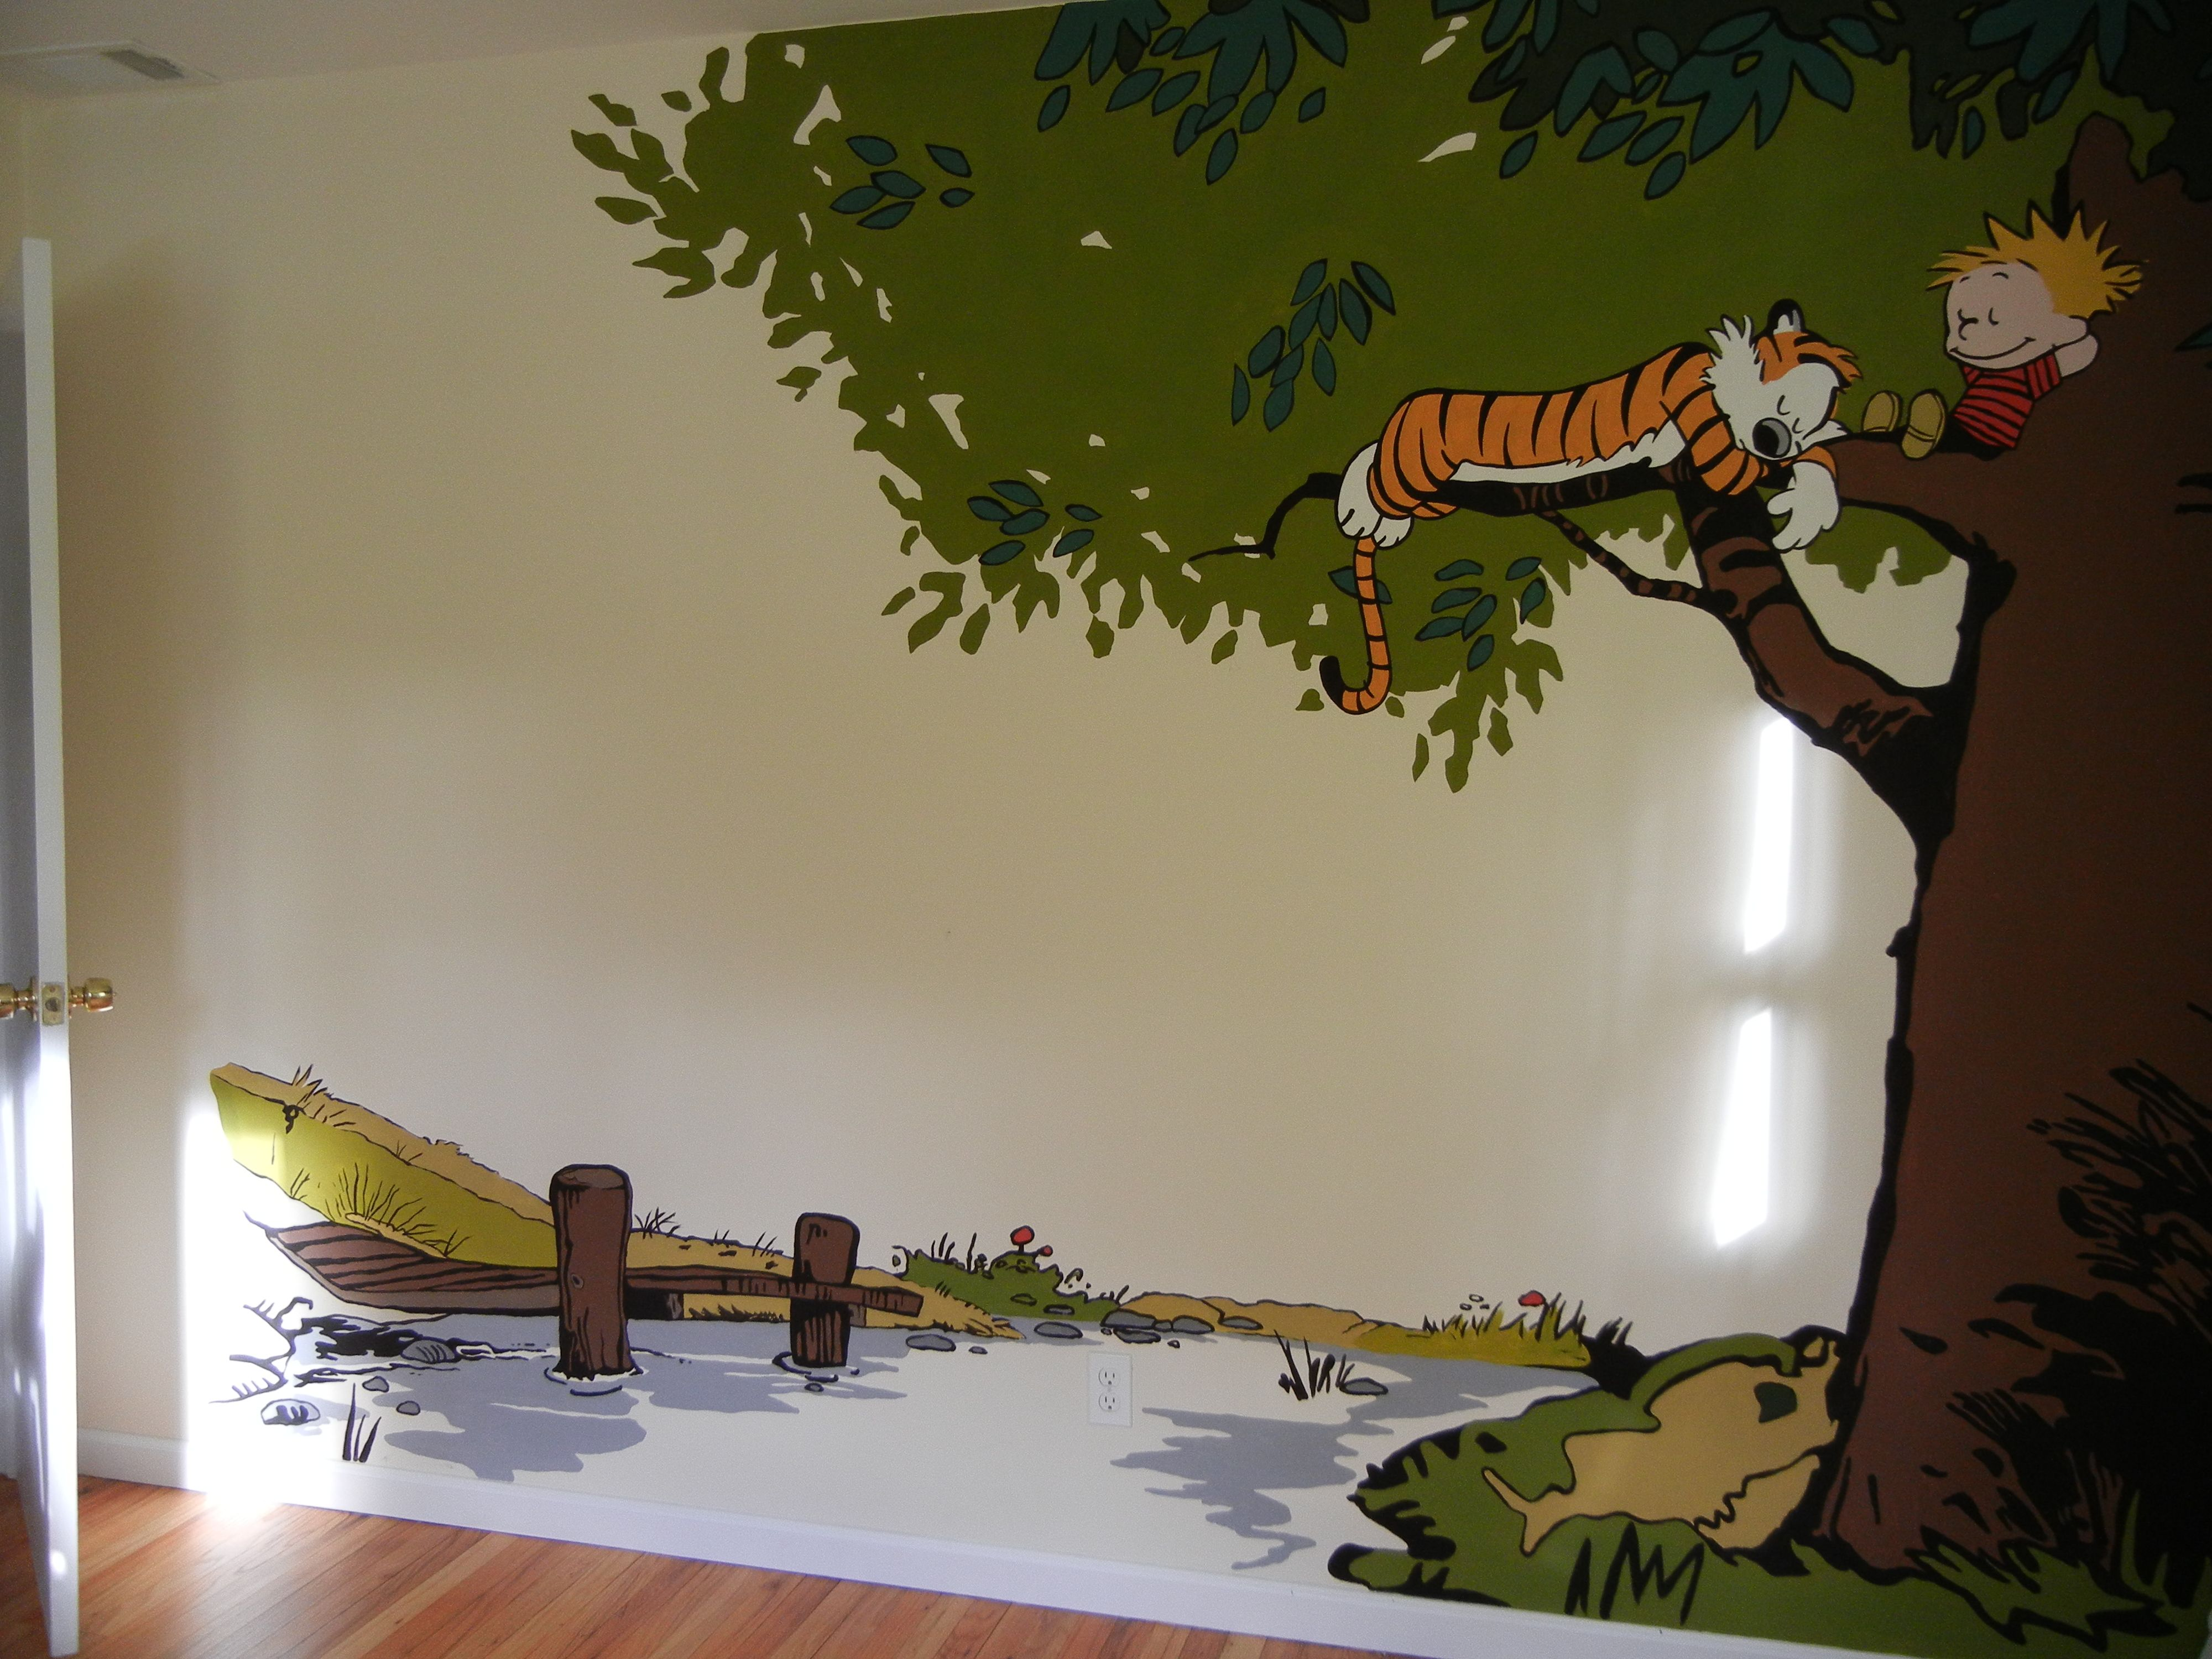 Calvin and hobbes mural in nursery 1 murals pinterest for Calvin and hobbes kids room